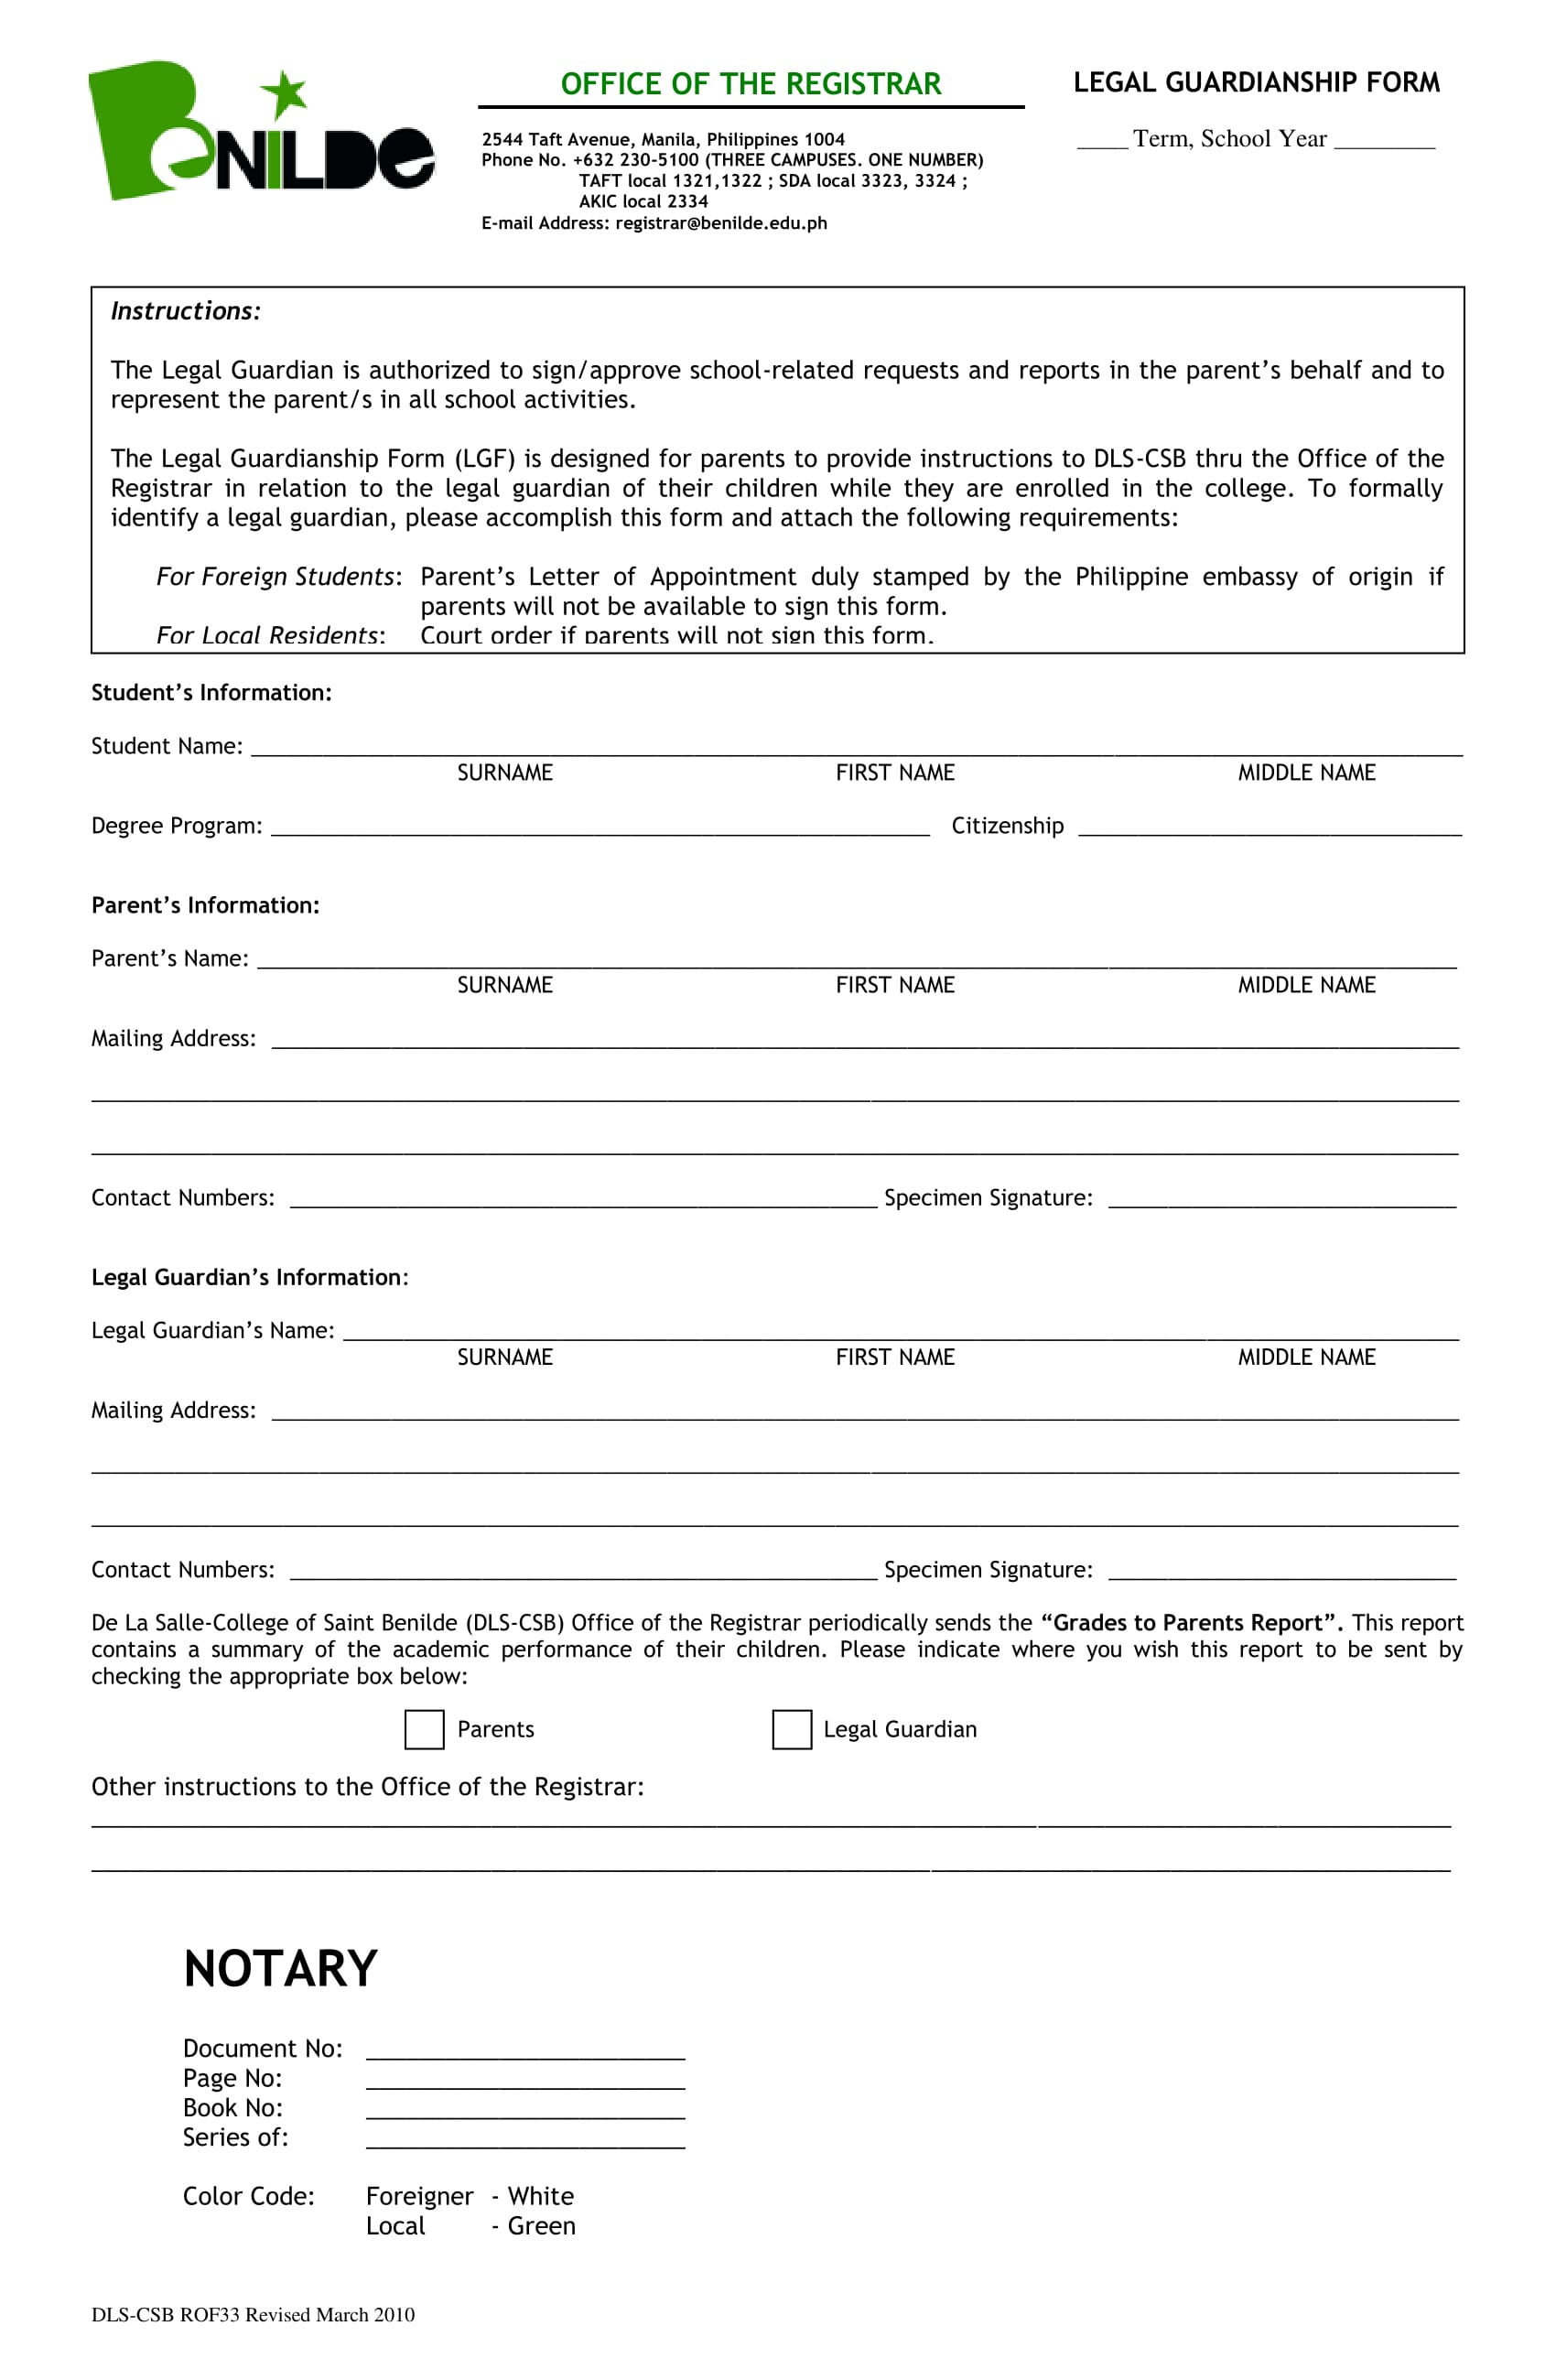 Benilde Legal Guardianship Form 1